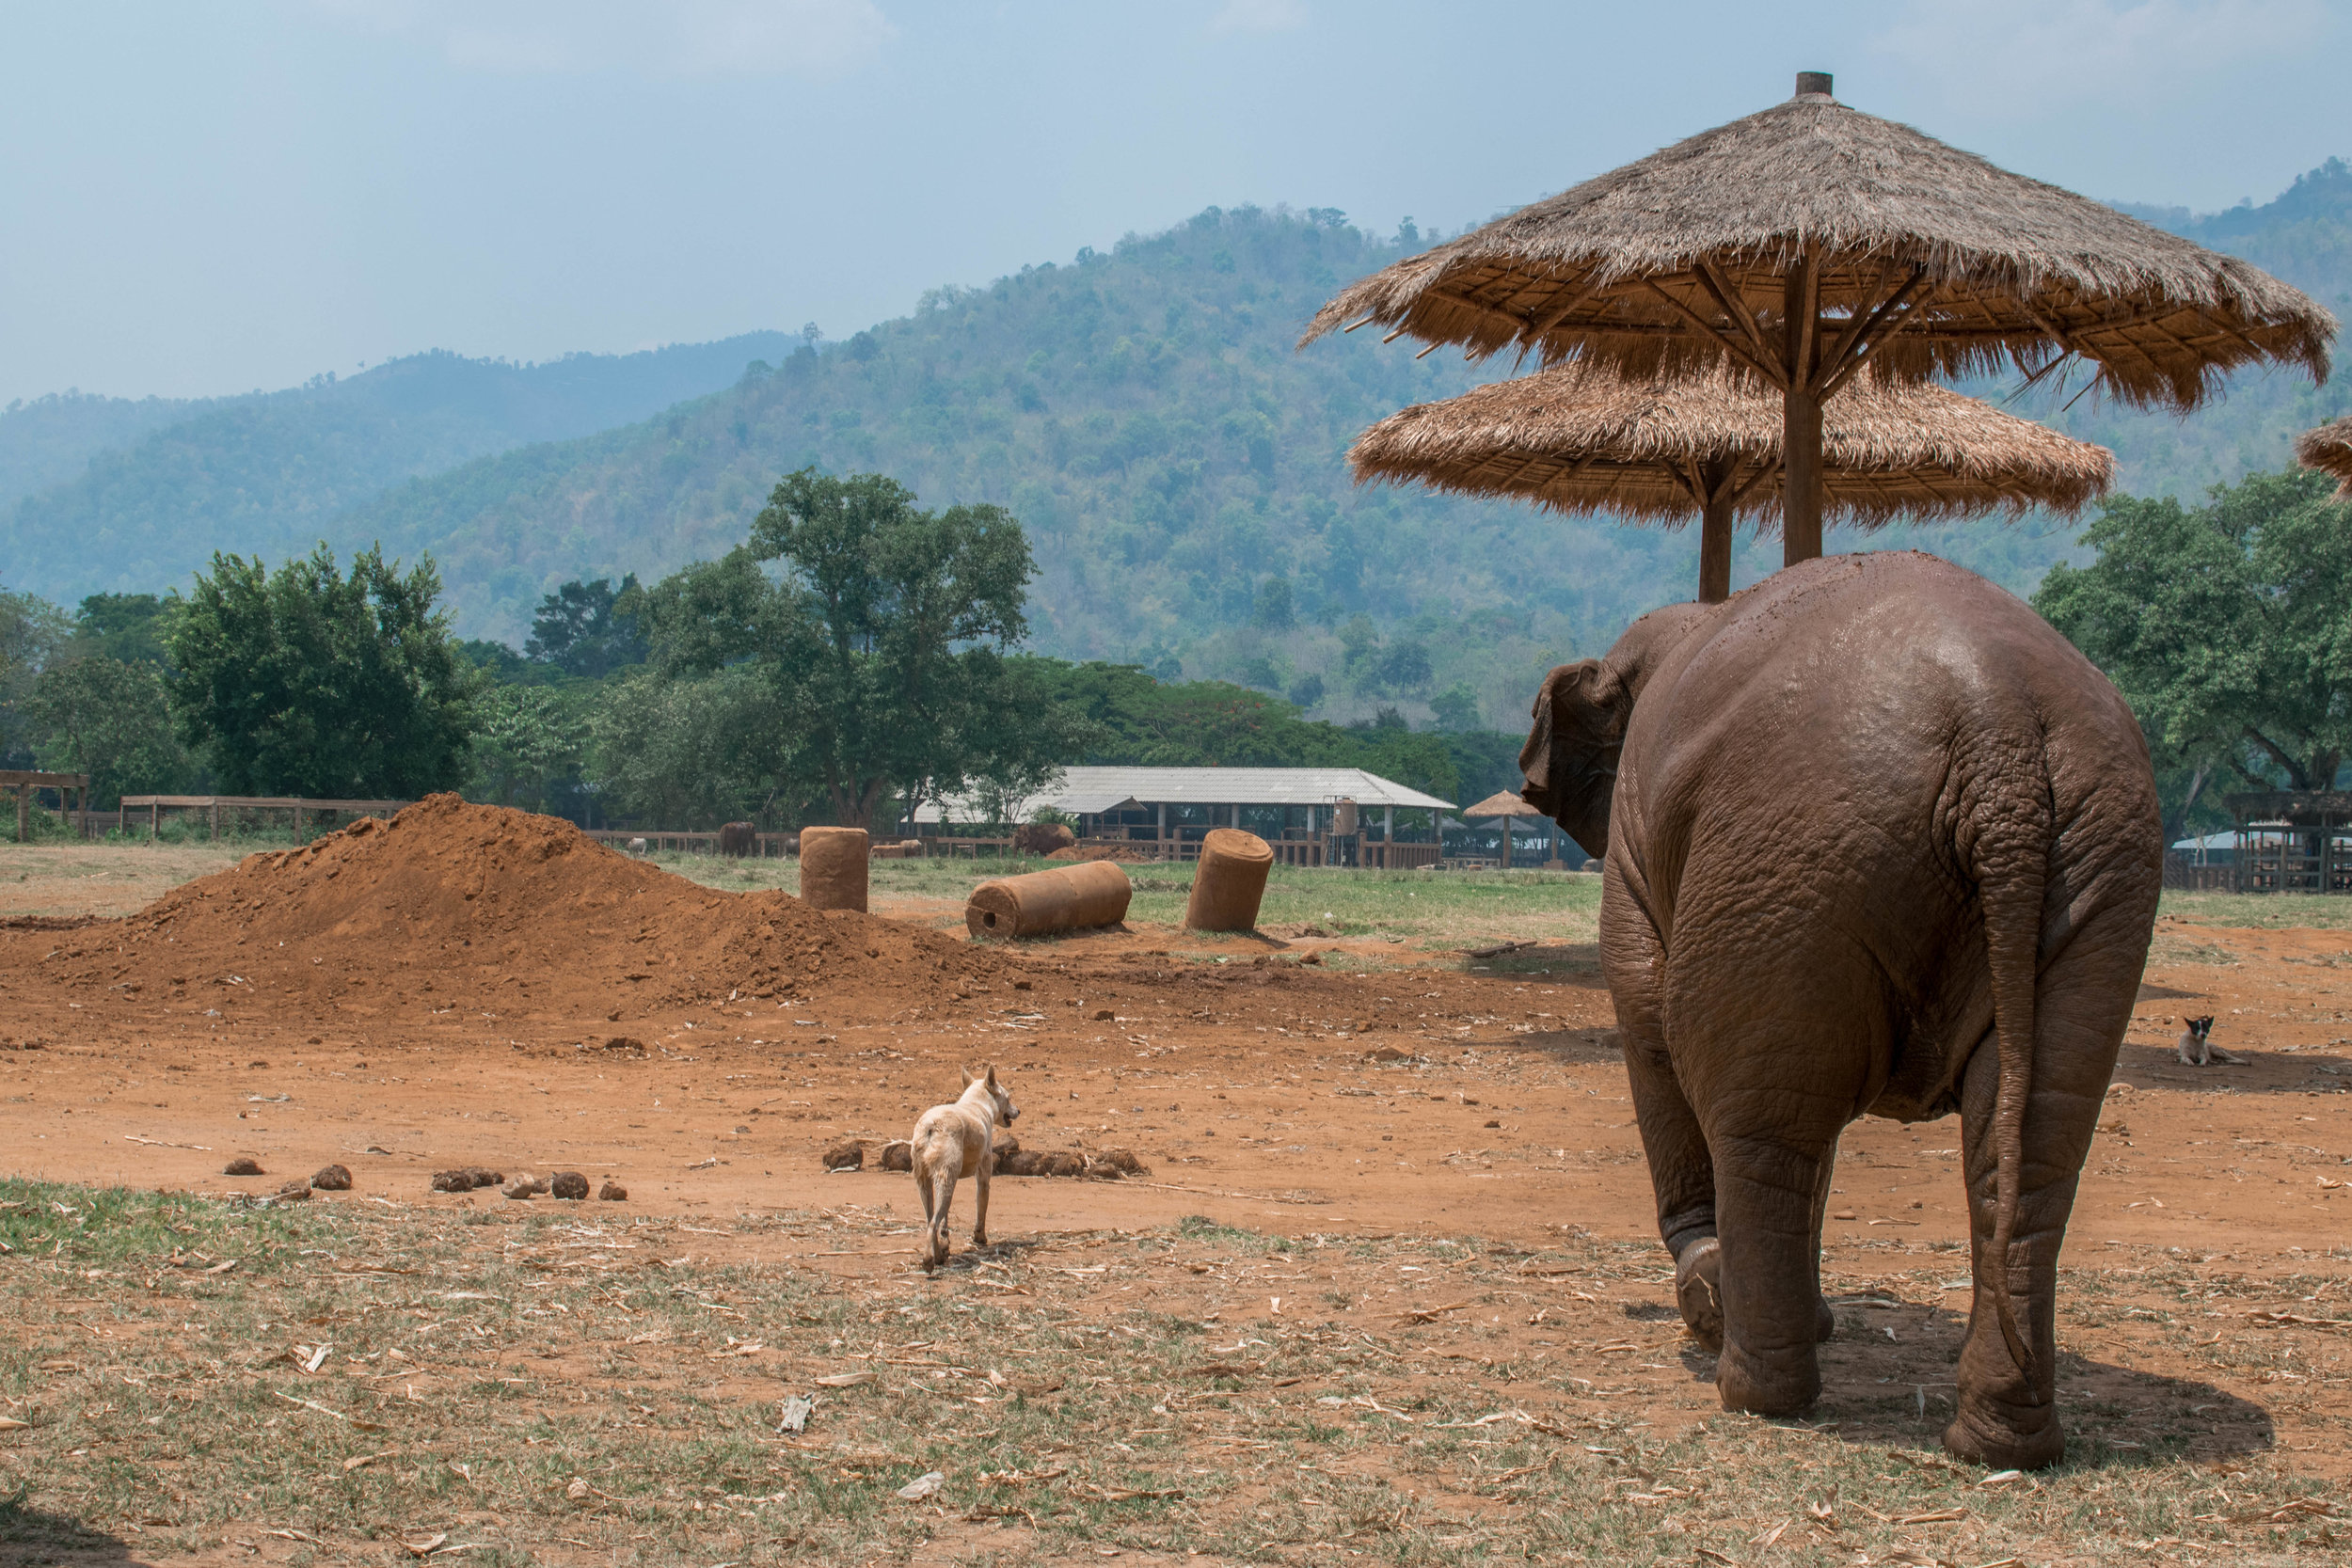 The two best friends that anyone could have. In addition to the gentle giants it's named for, ENP is also home to dozens of rescue dogs, cats, water buffalo, and other critters rescued from desperate situations.